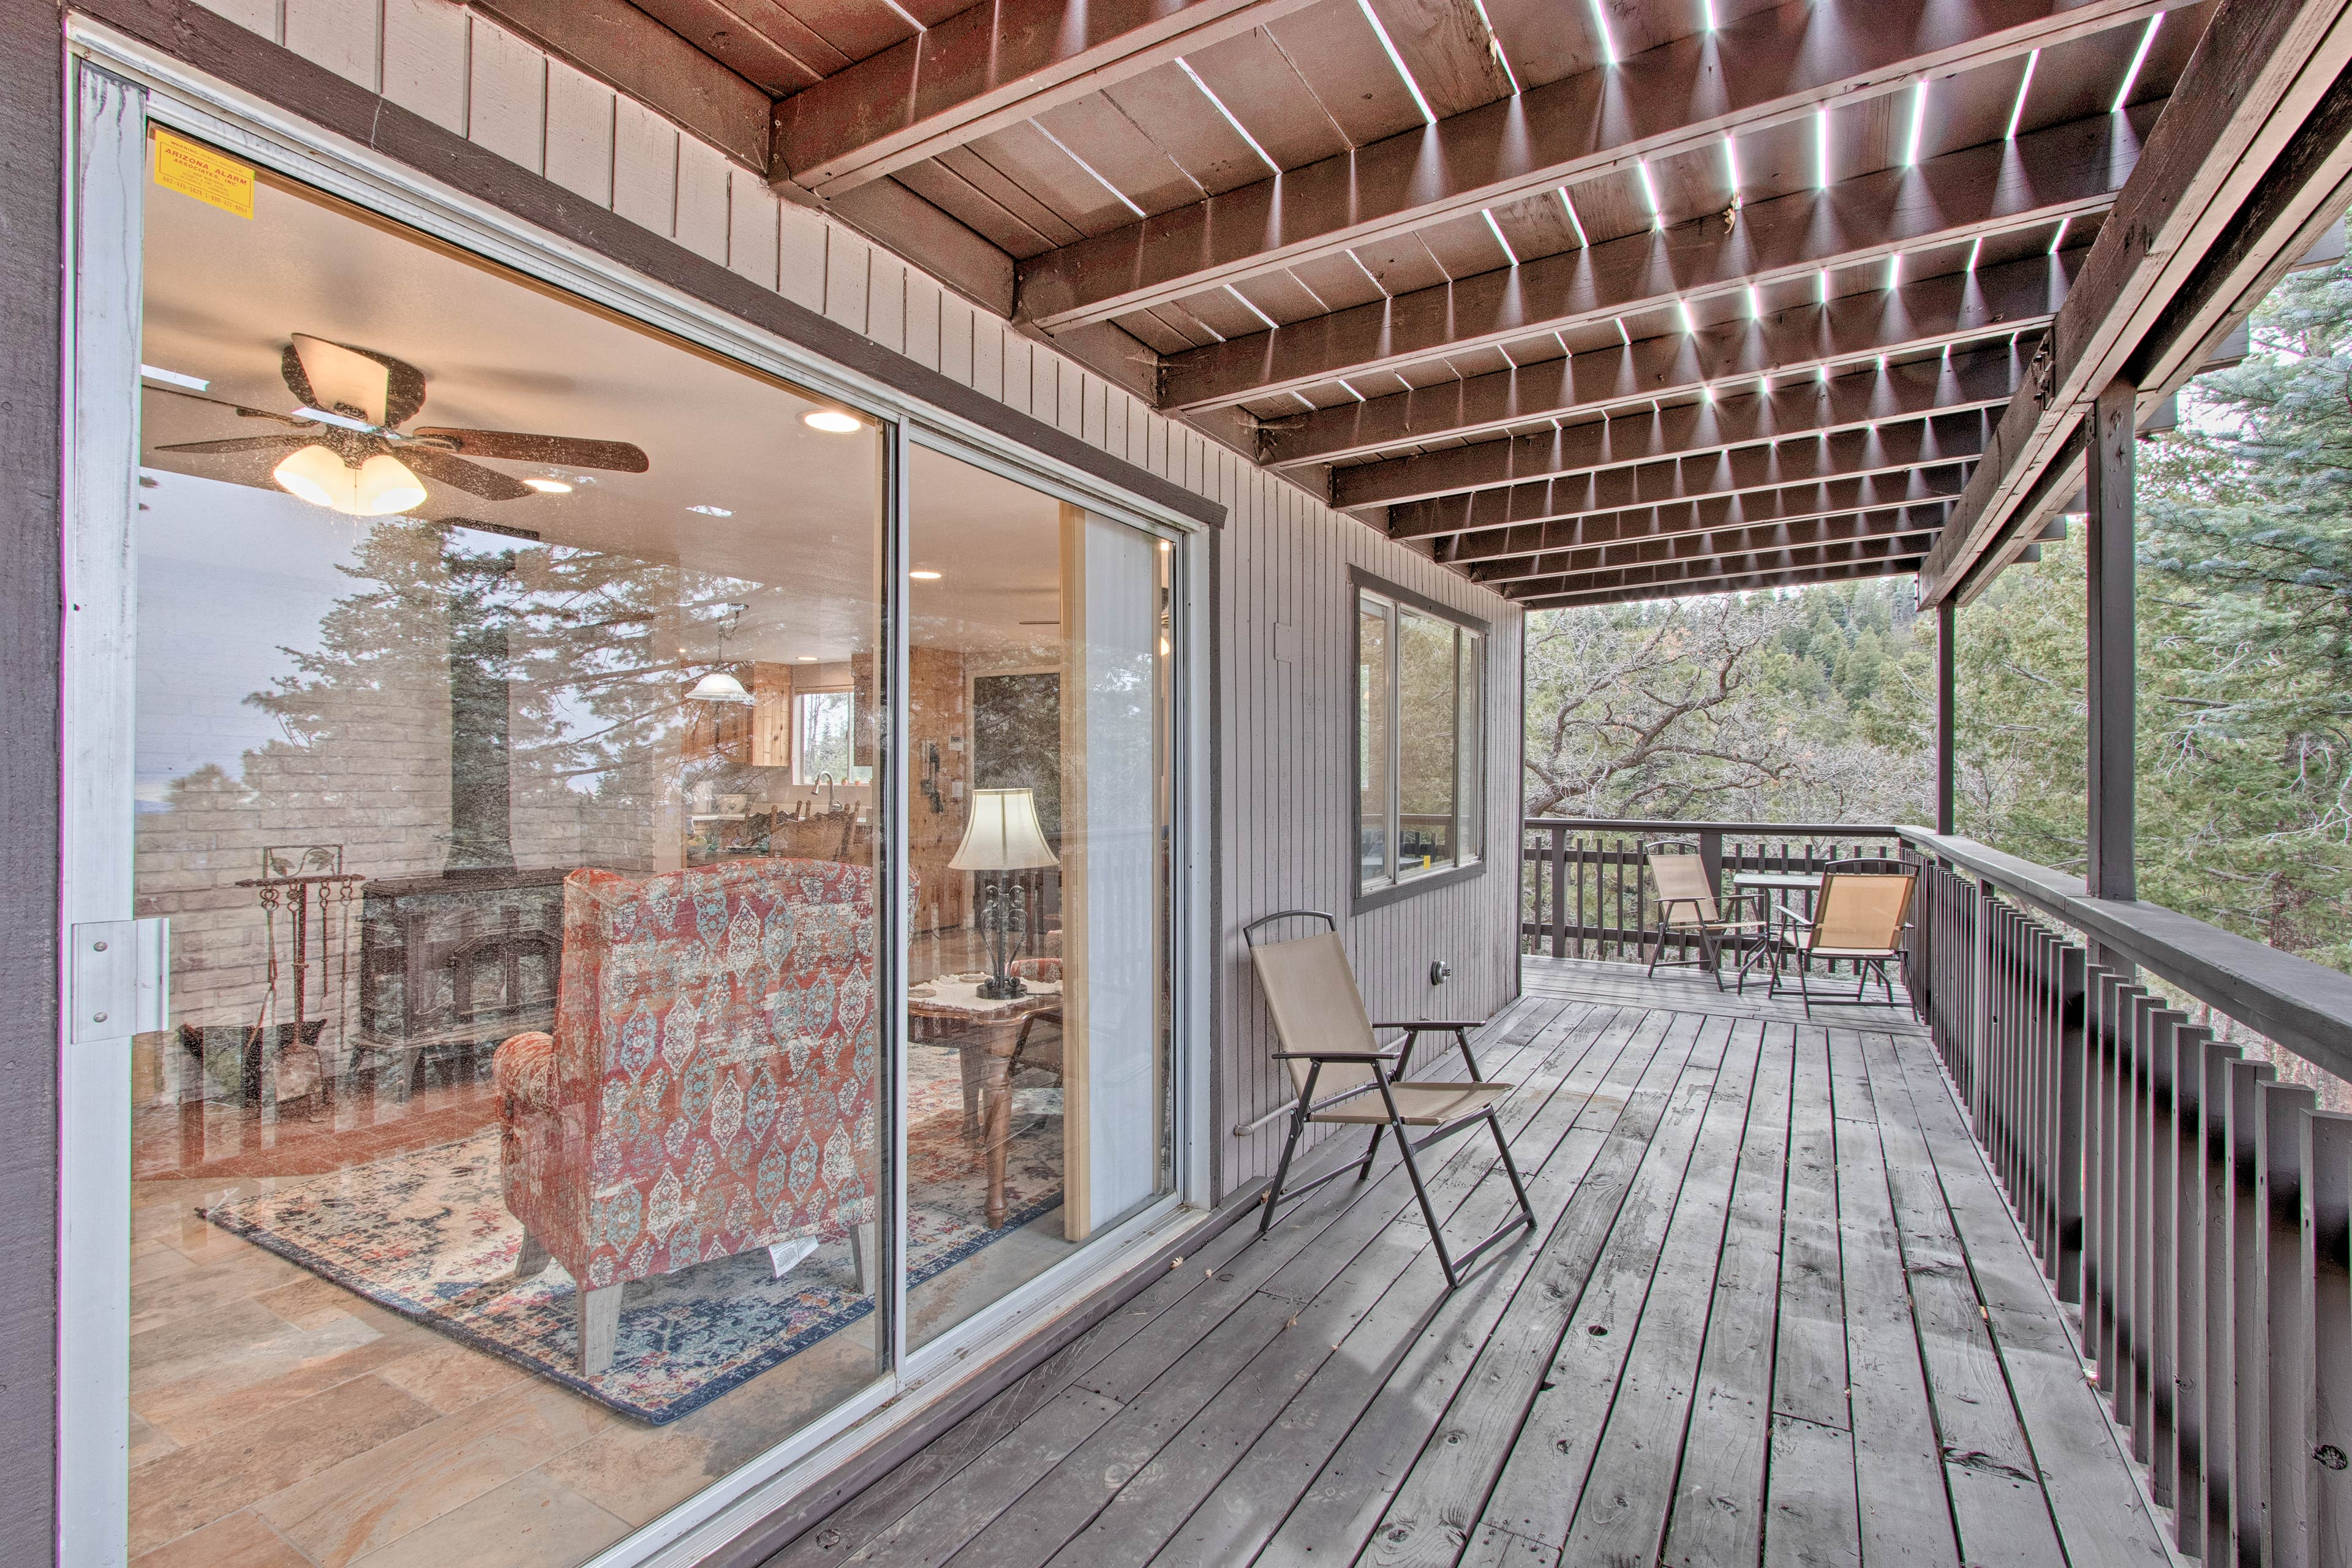 Breathe in that fresh pine-scented air on the covered deck.